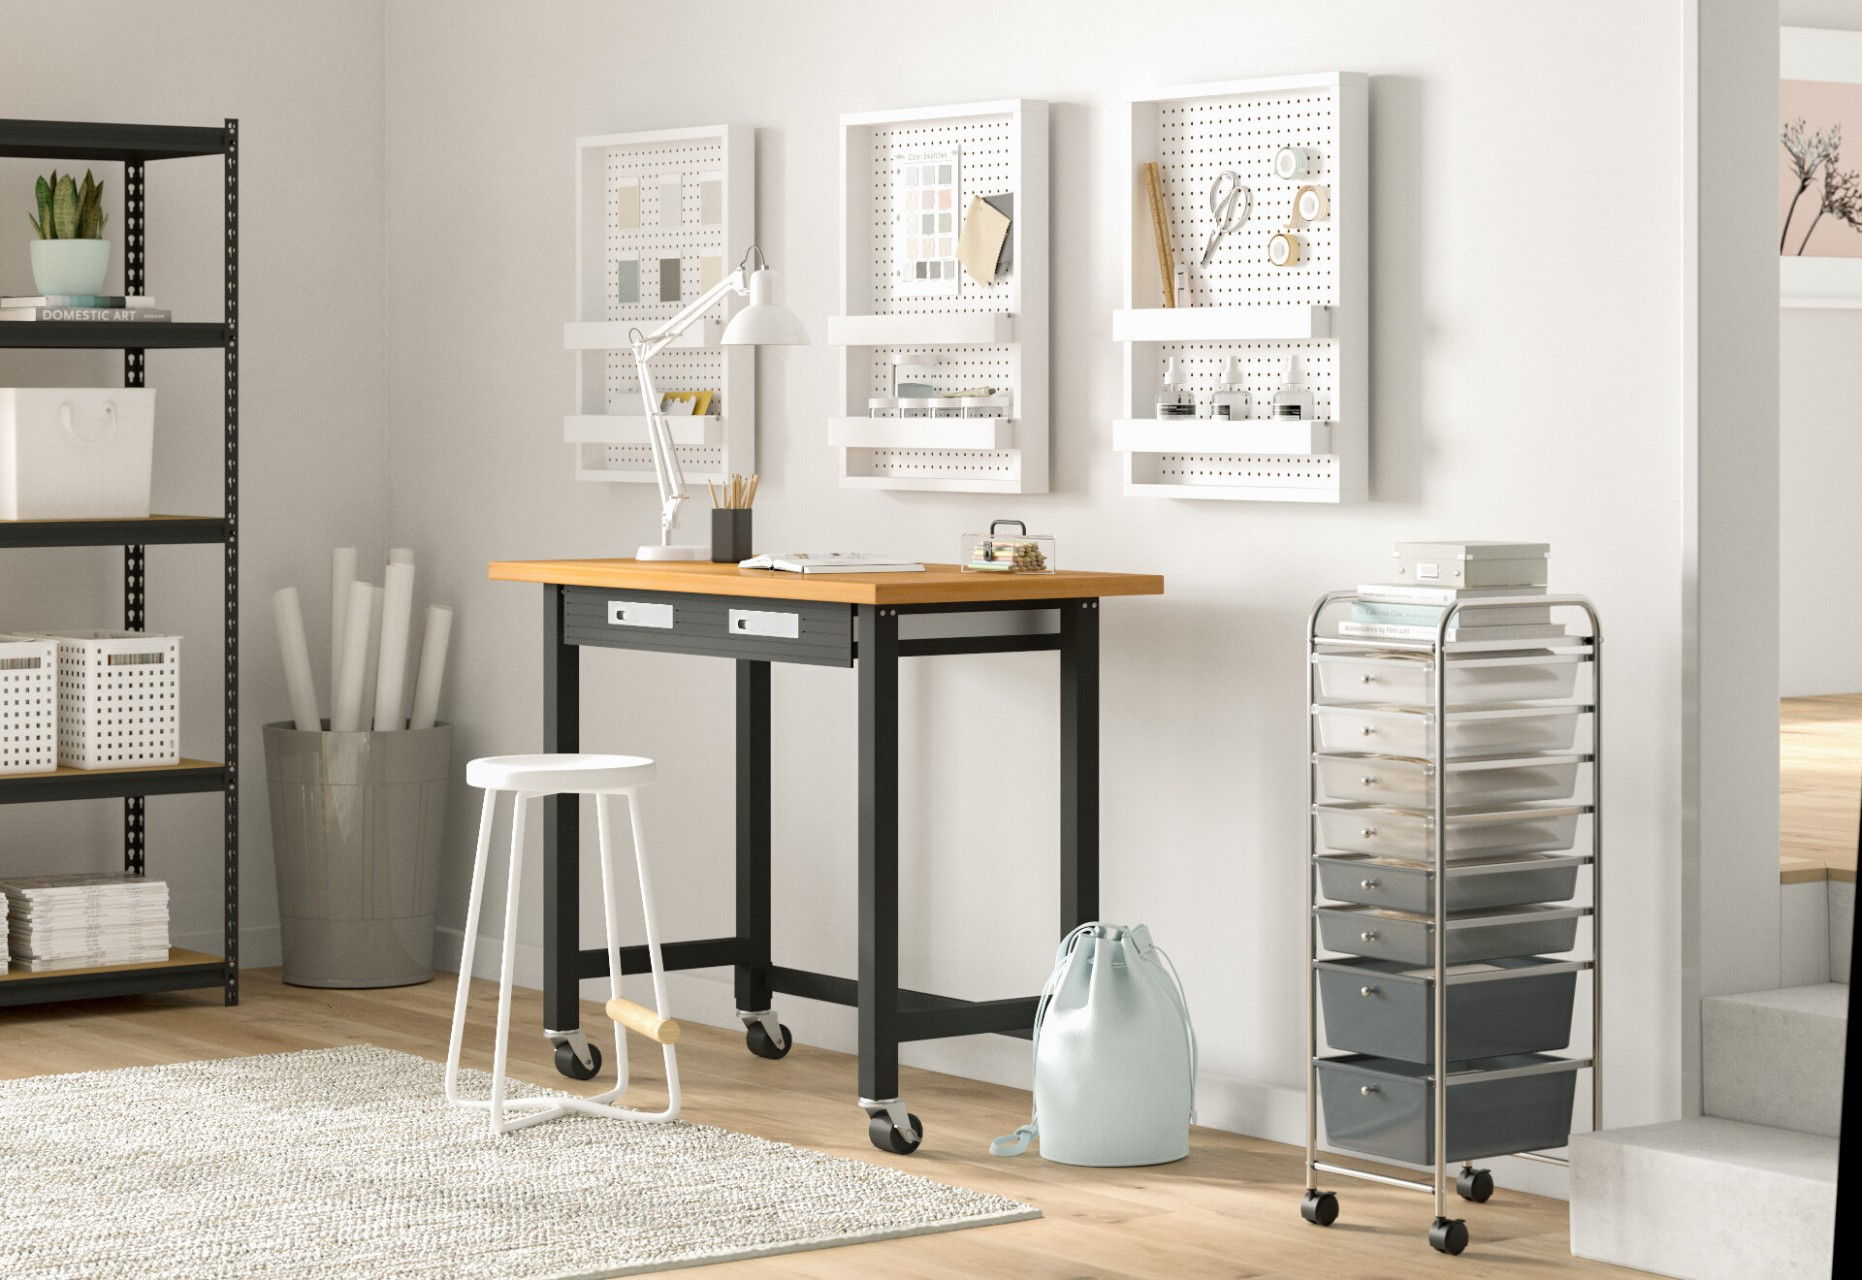 8 Must-Have Home Office Organization Ideas (With Photos!)  Wayfair - Home Office Ideas Organization